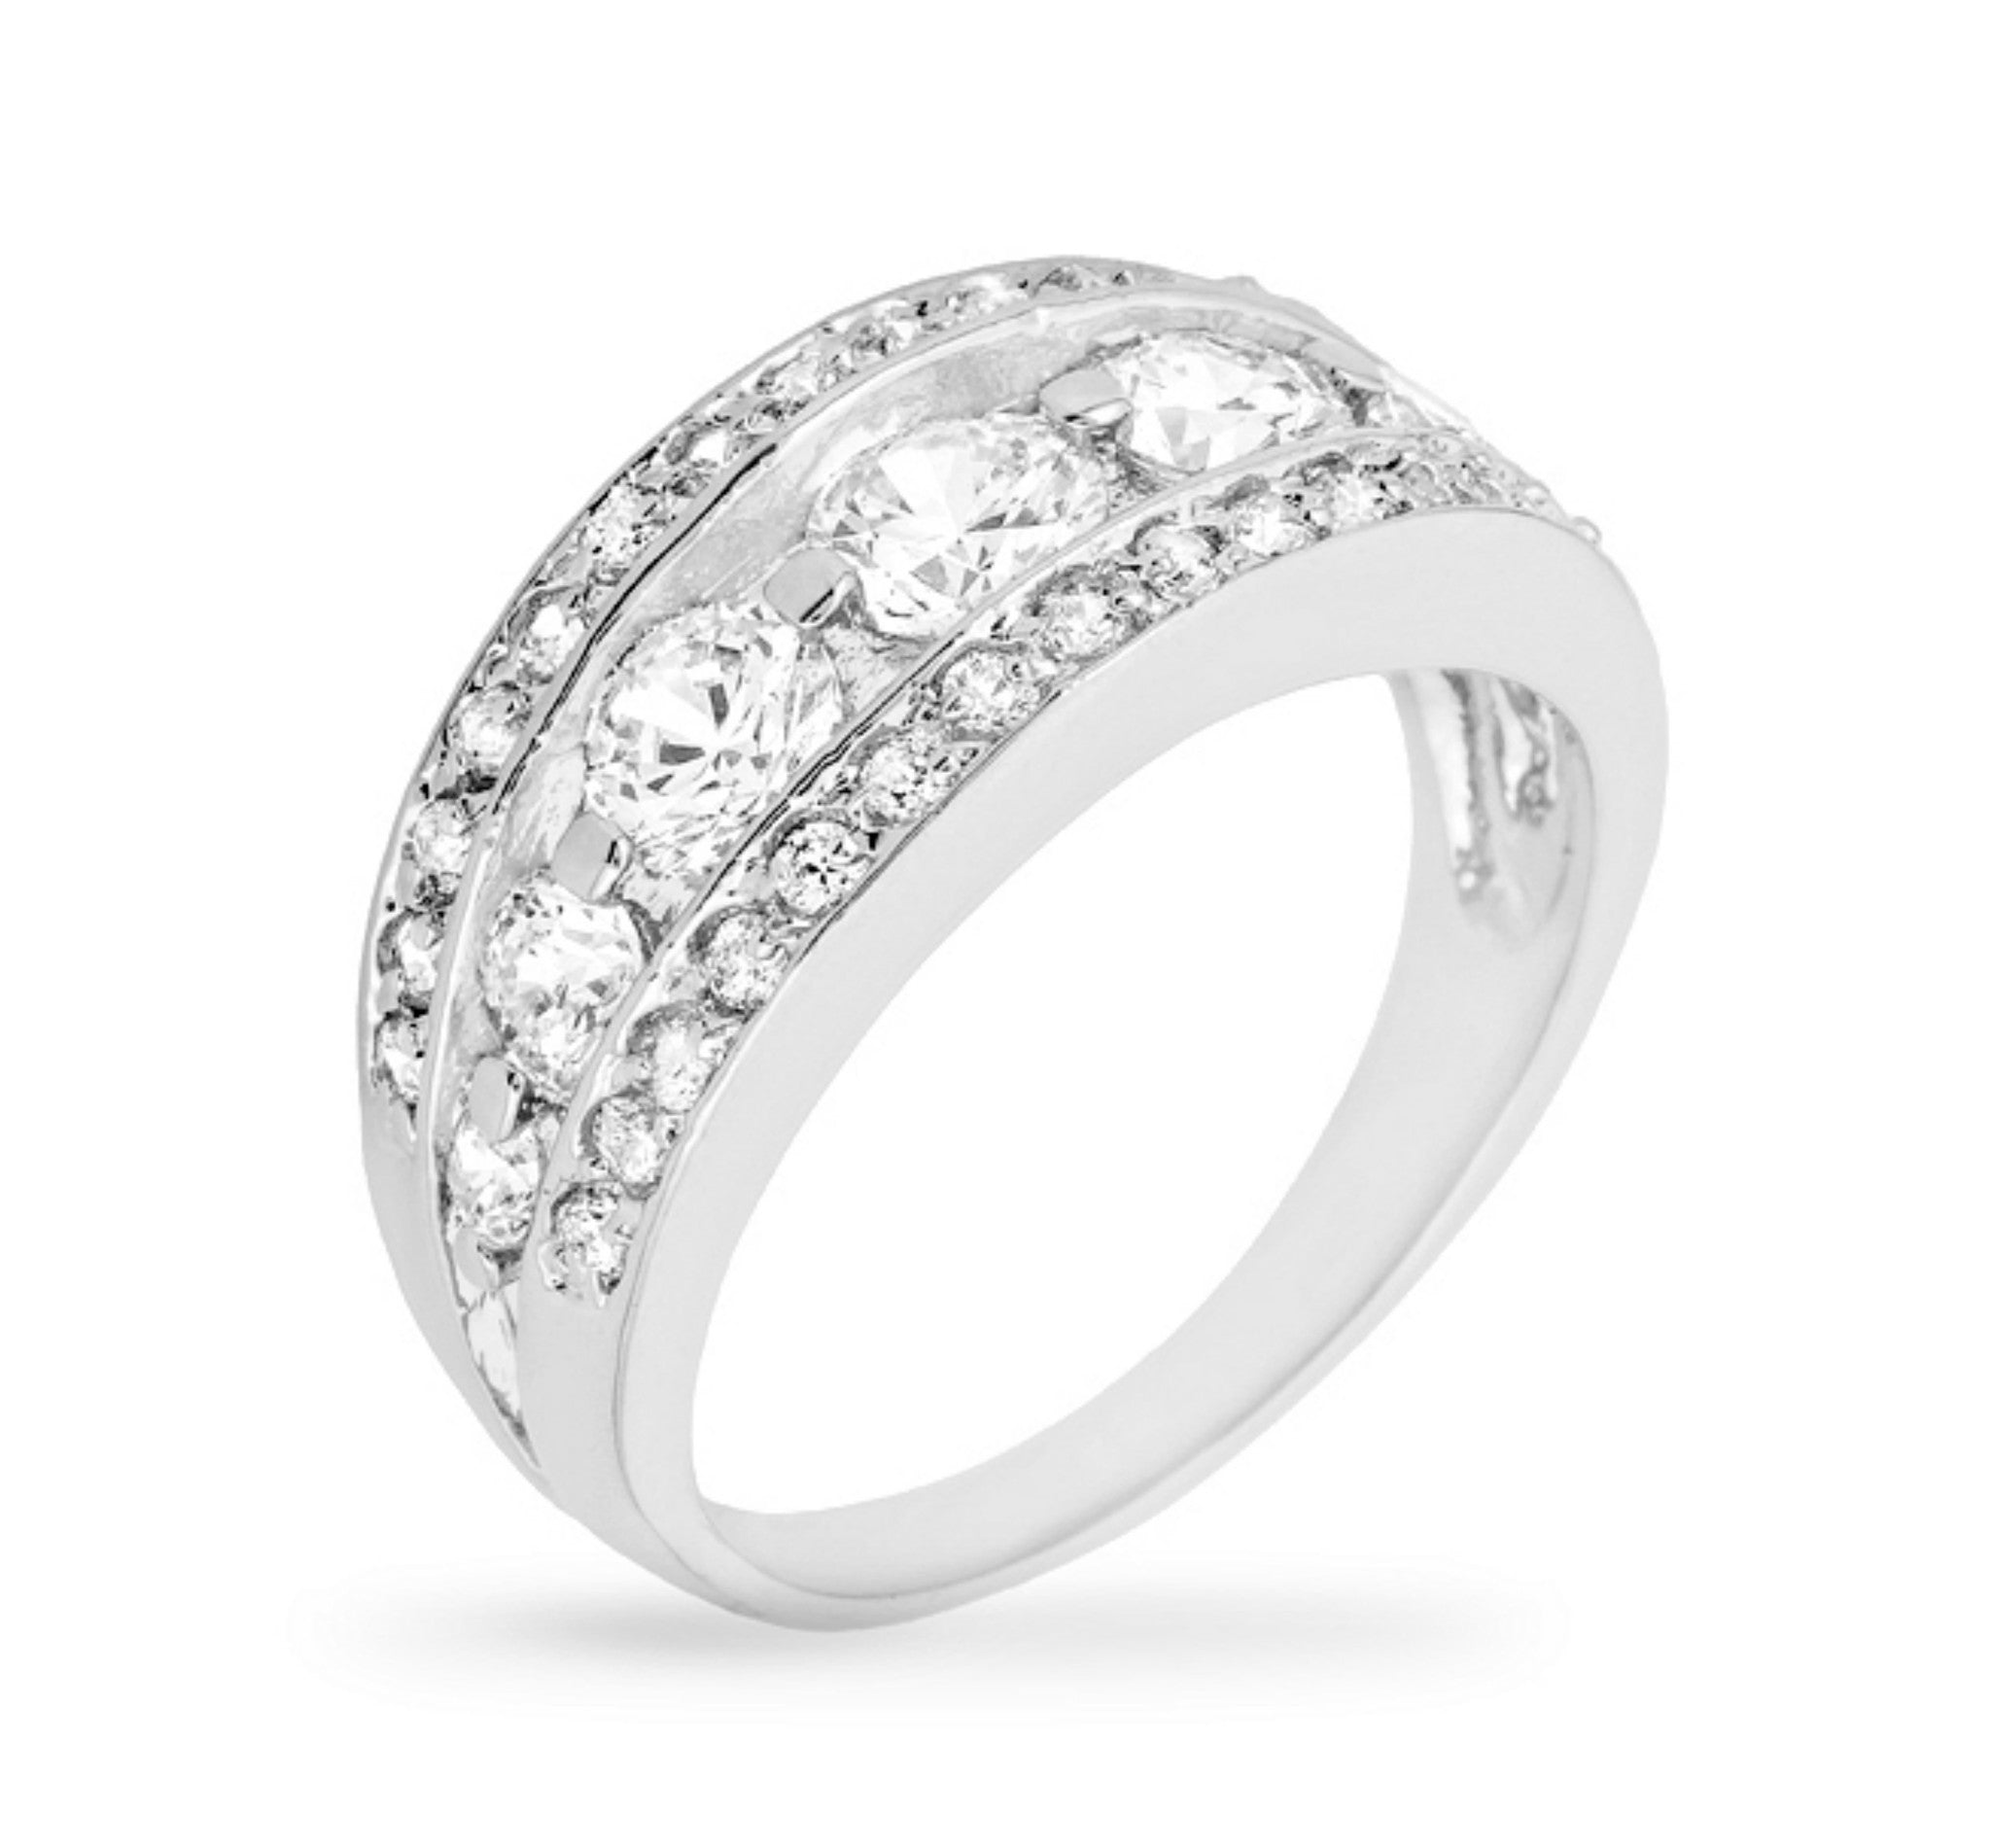 dsc eternity jewellery chisholm from diamond image rings hunter description diamonds anniversary